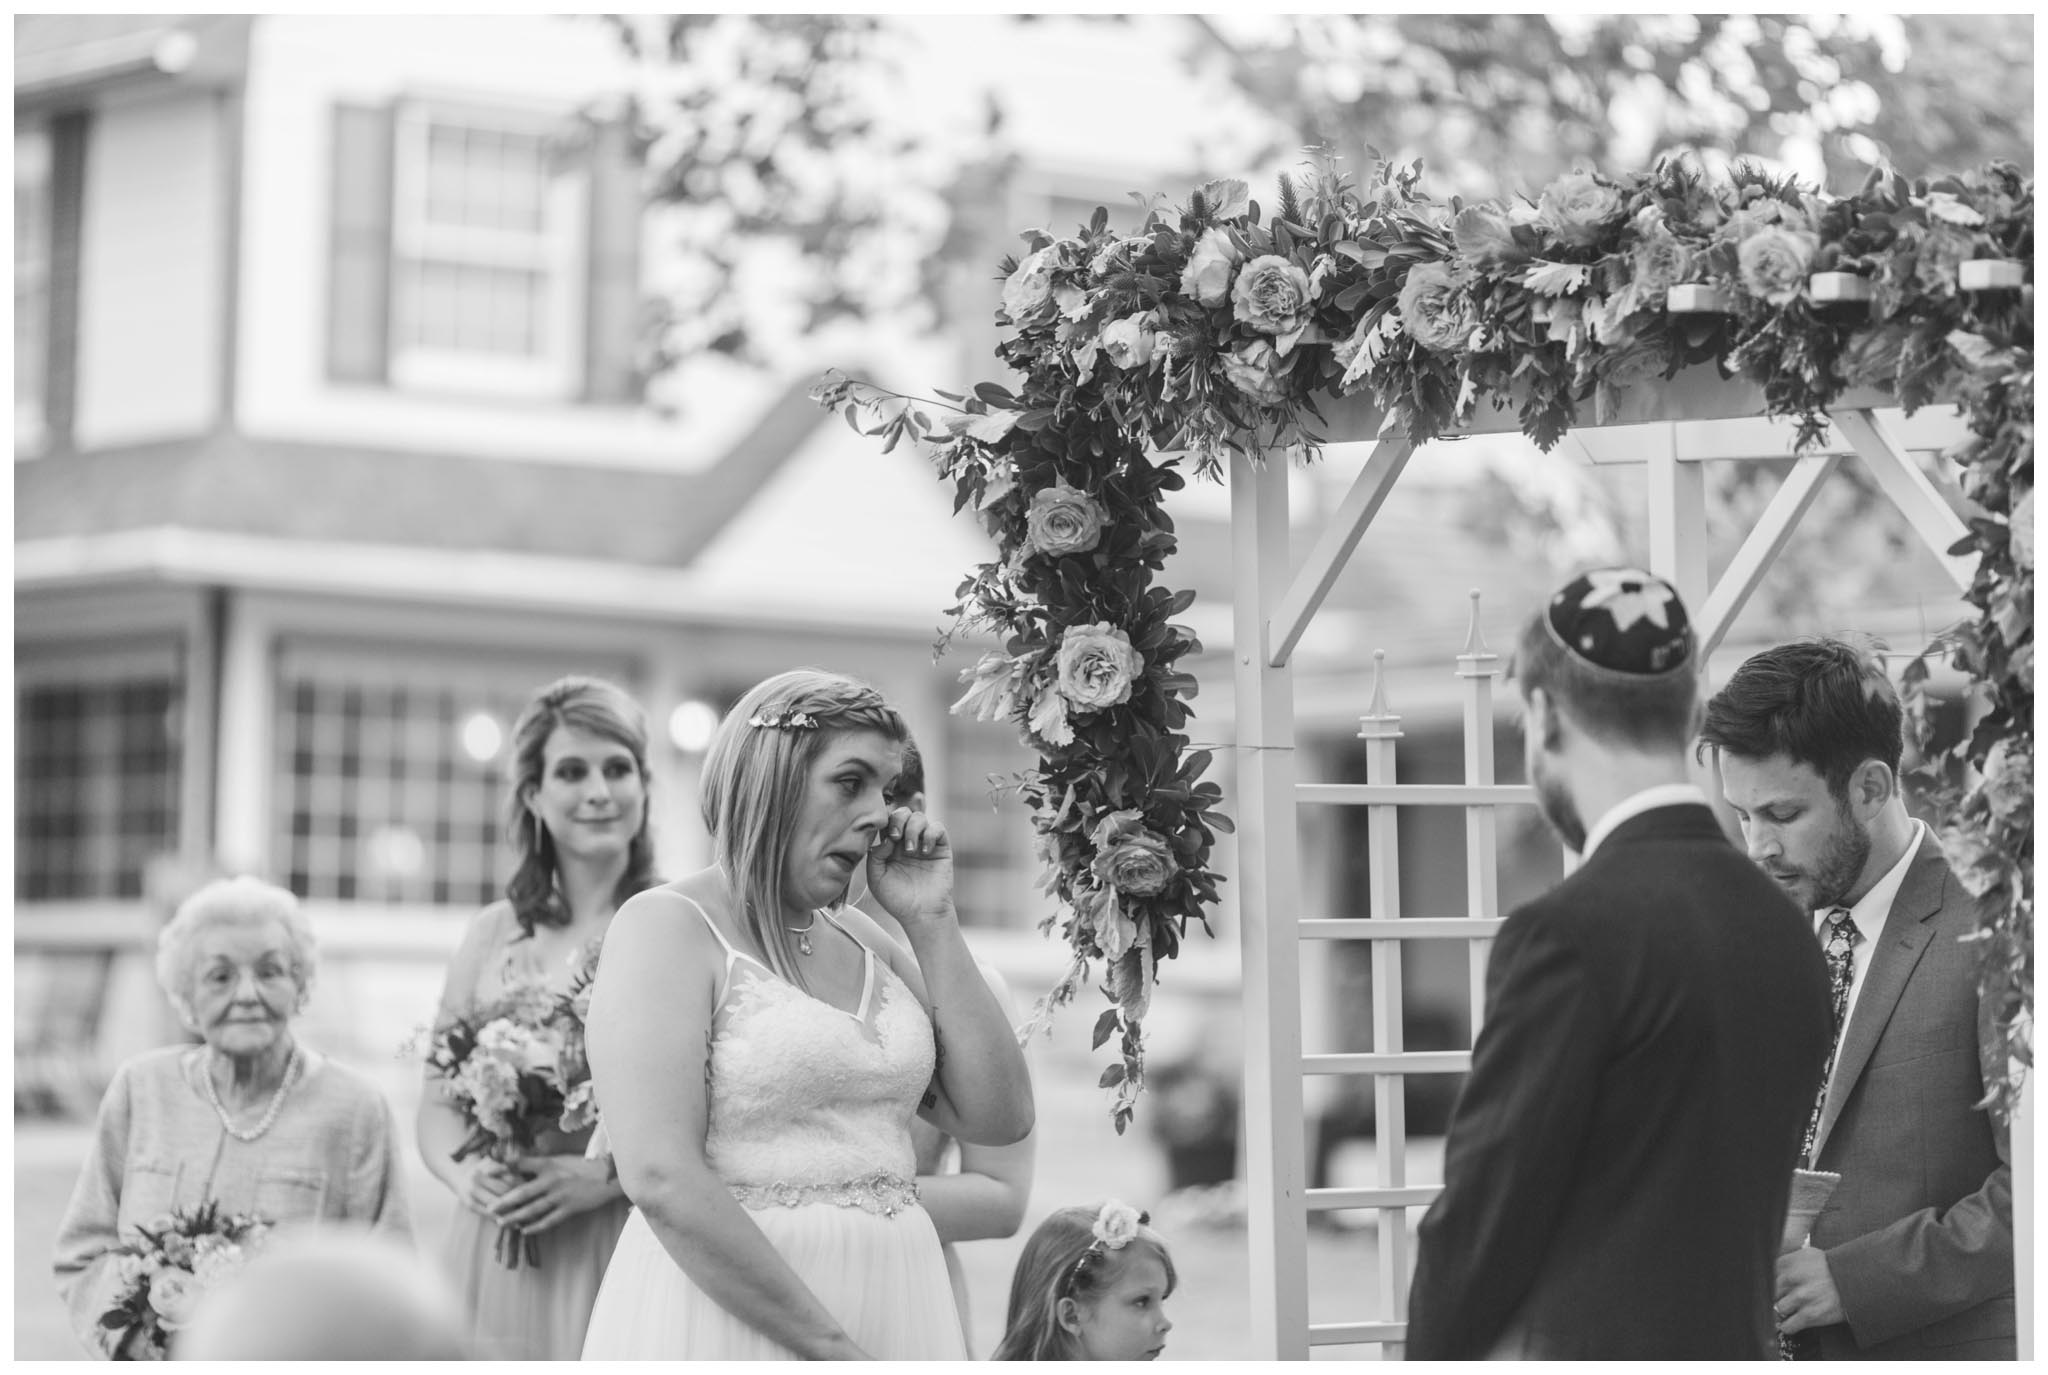 Joseph Ambler Inn, wedding